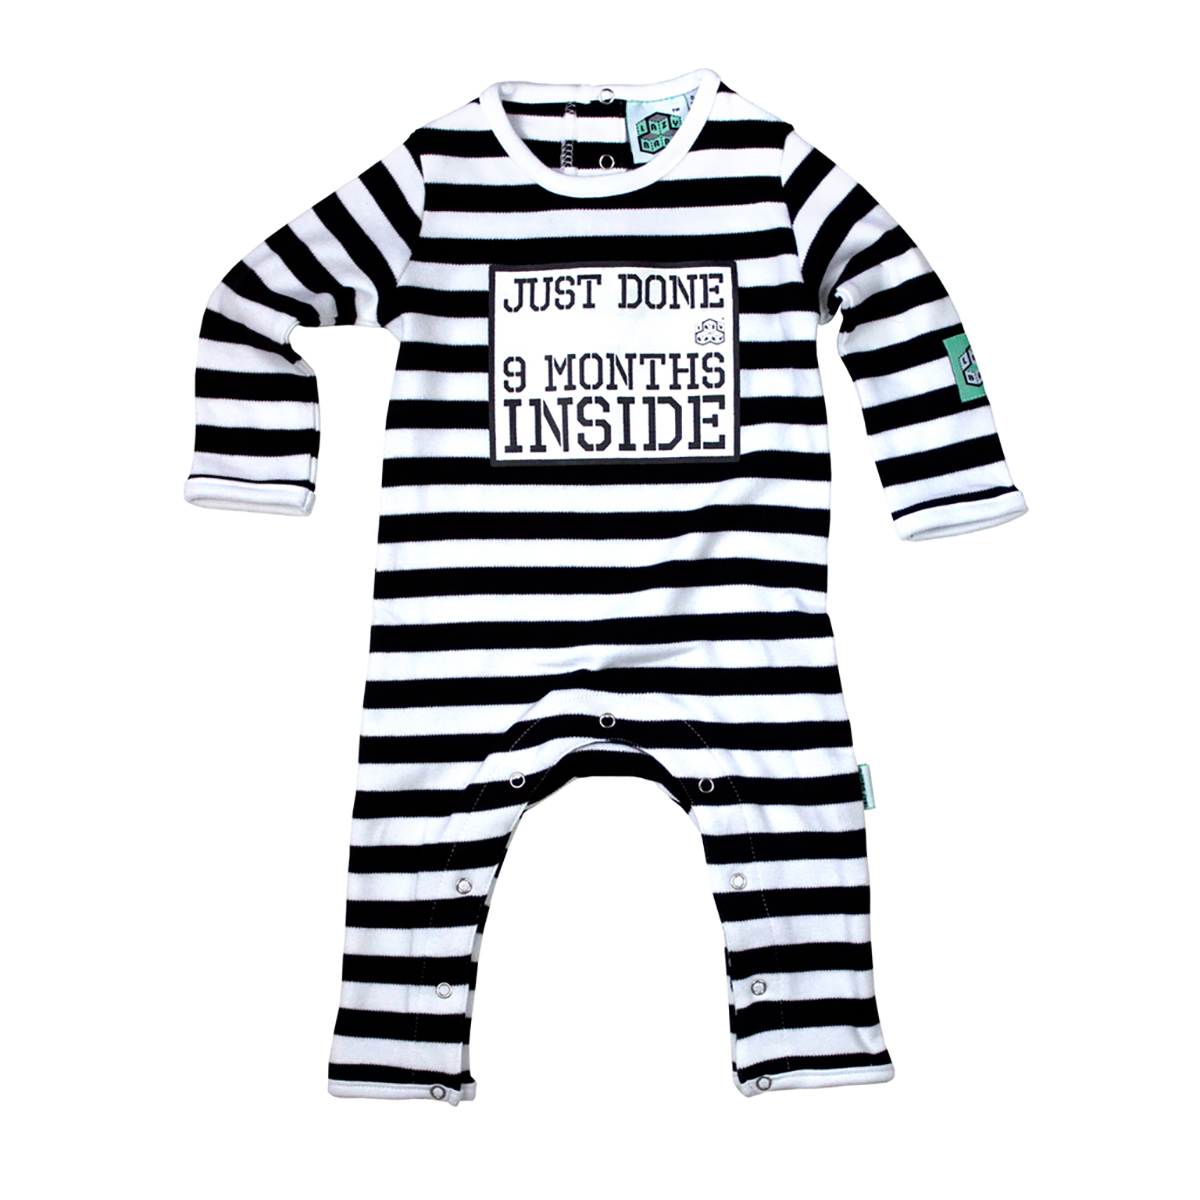 Black and White stripe baby grow with slogan 'Just done 9 months inside'